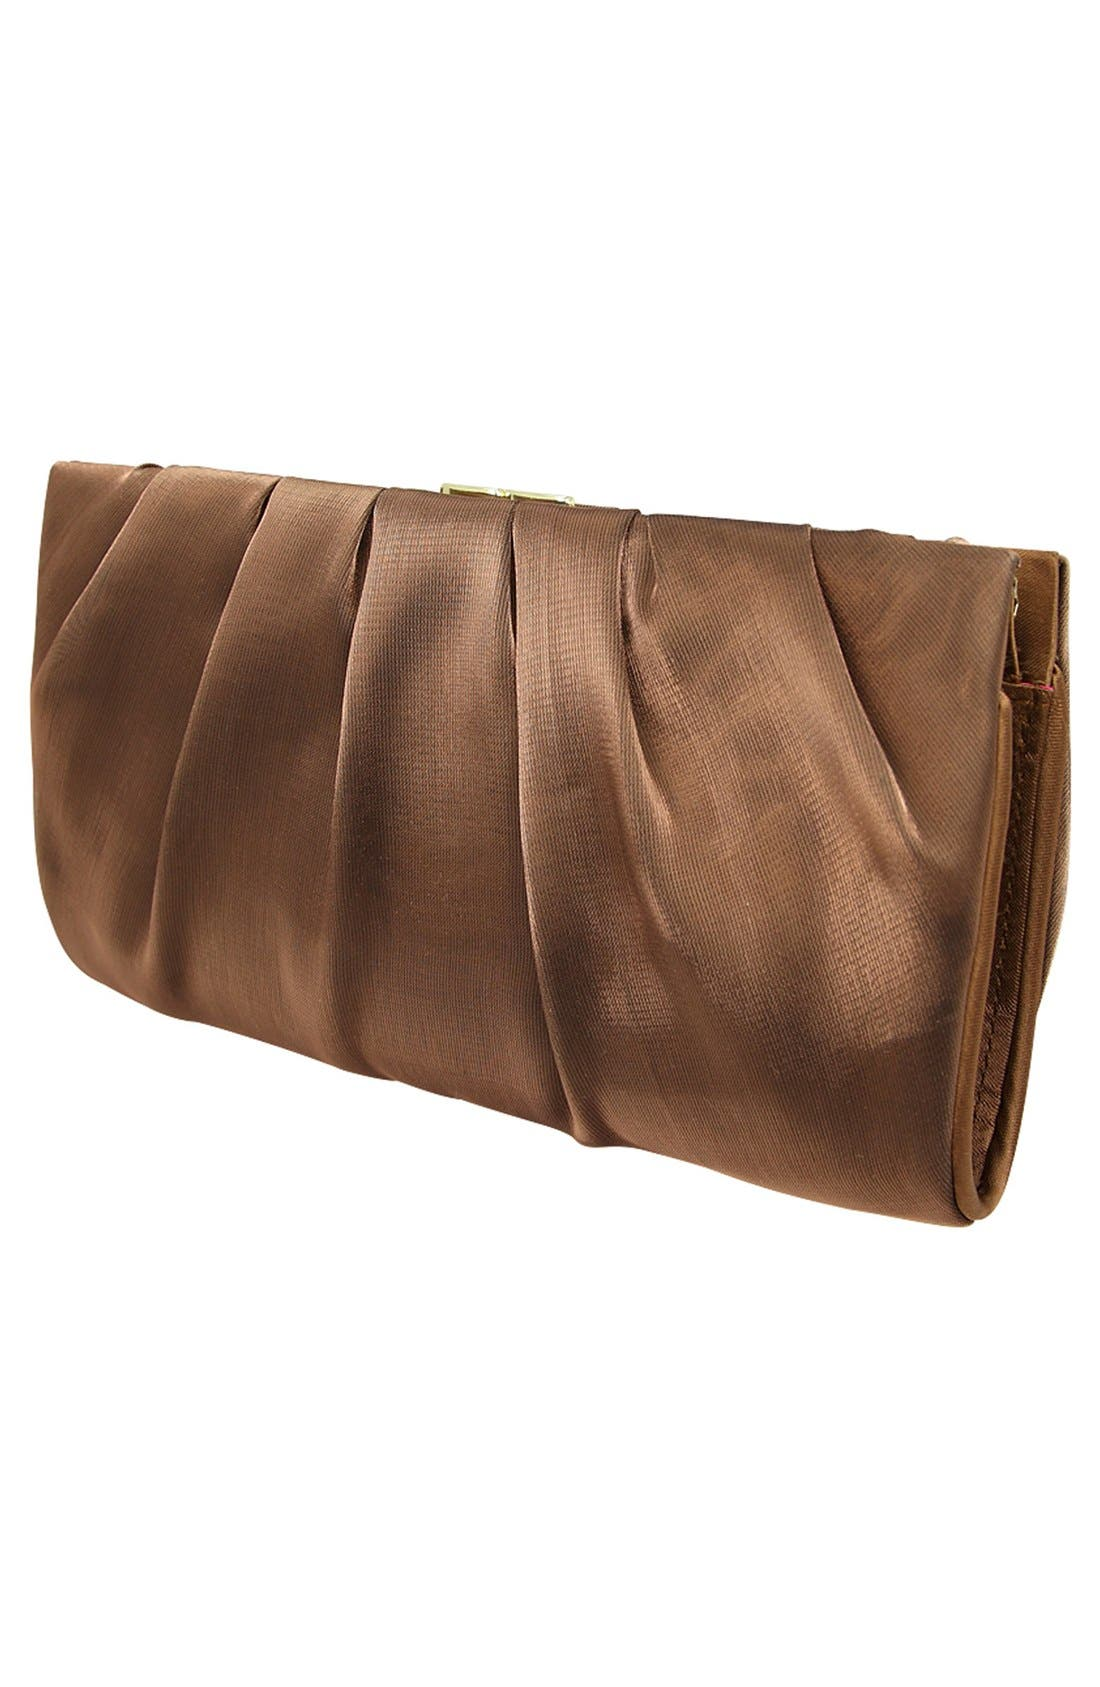 'Larry' Satin Clutch,                             Alternate thumbnail 4, color,                             200